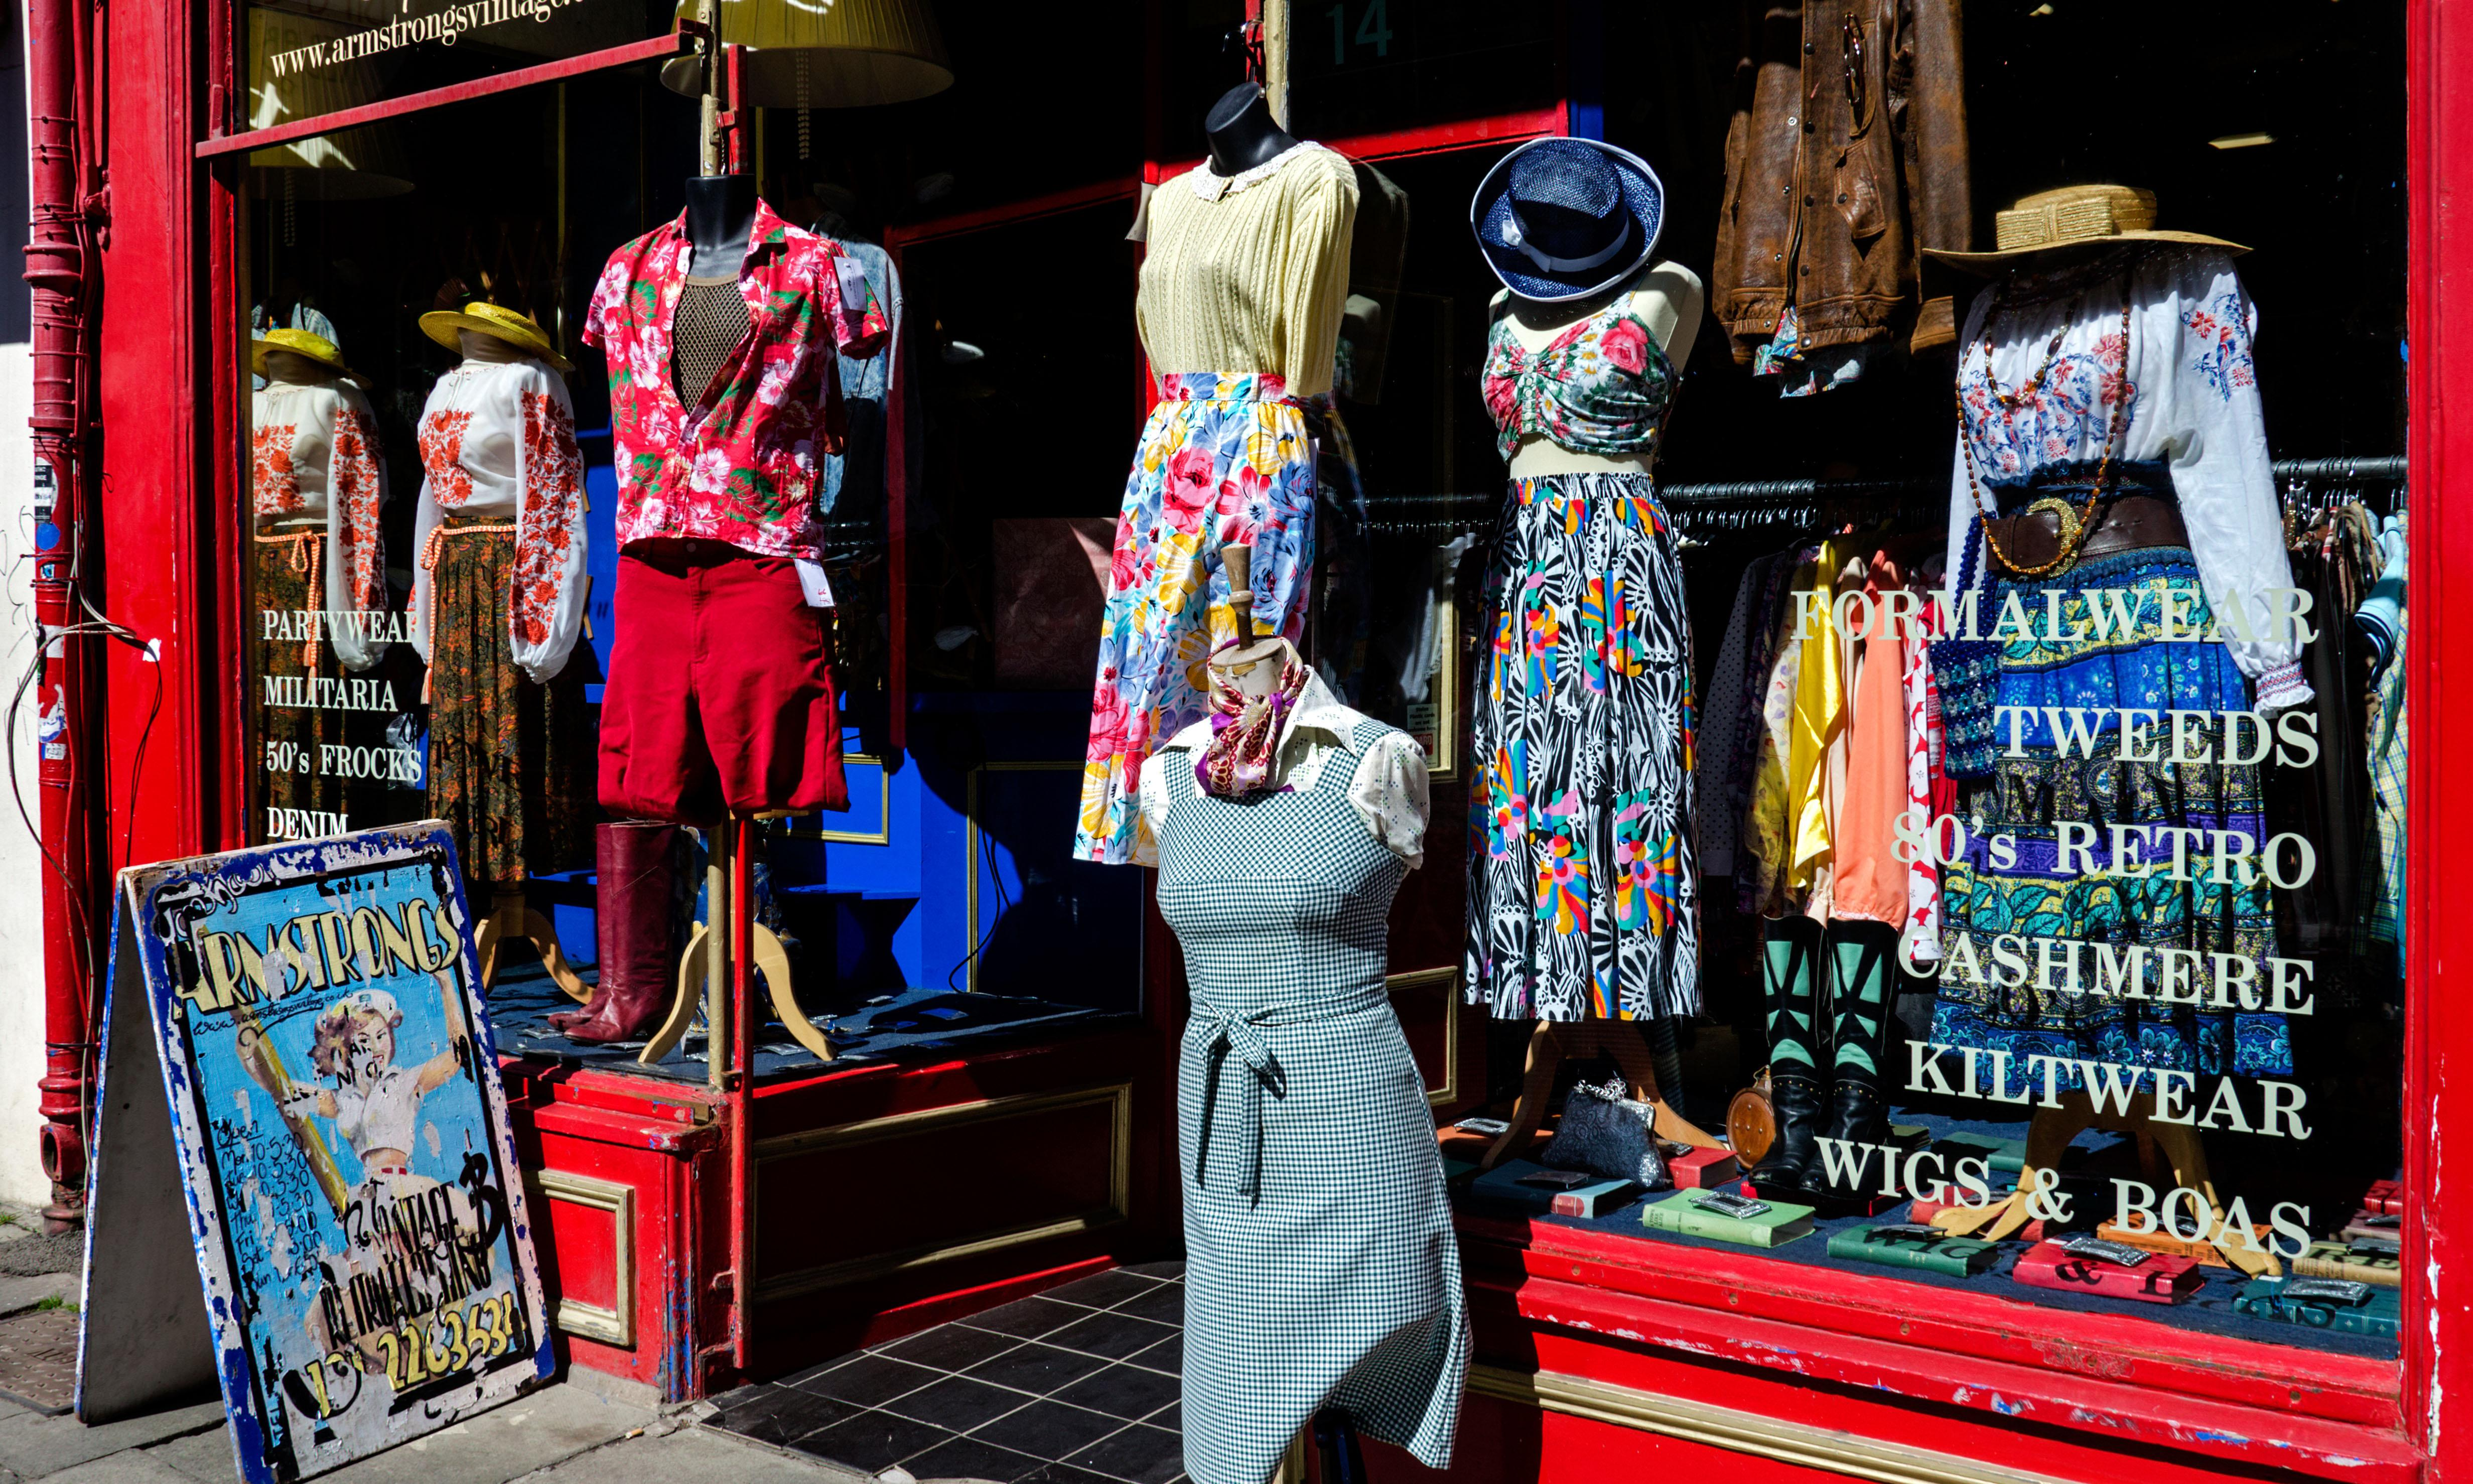 Share a tip on vintage shopping in Europe for the chance to win a £200 hotel voucher